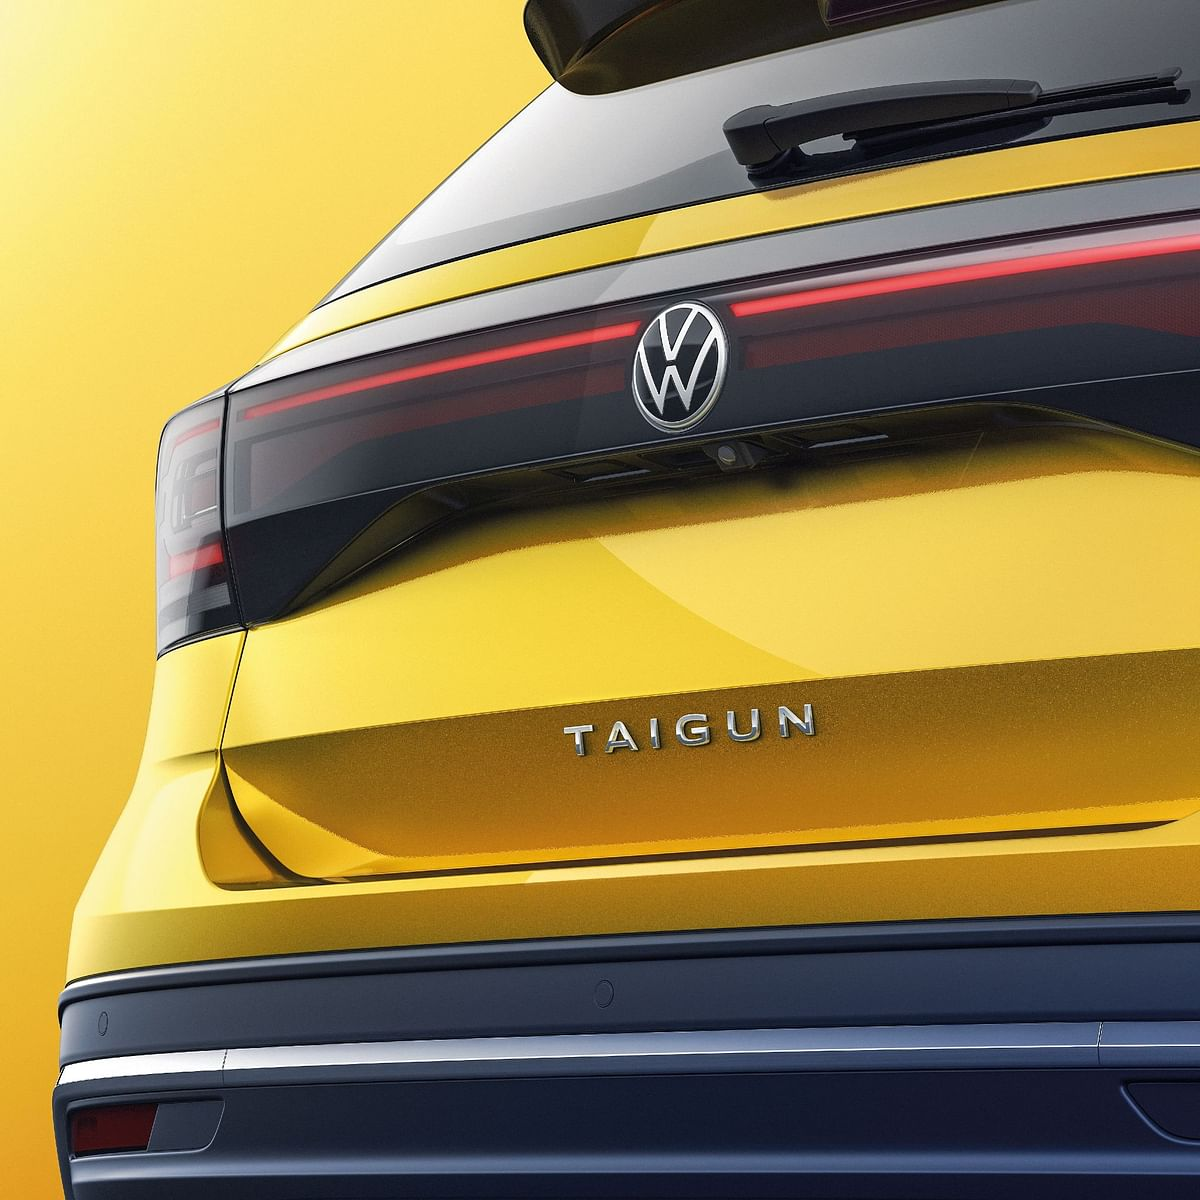 What makes the New Volkswagen so accessible and digitally sound?